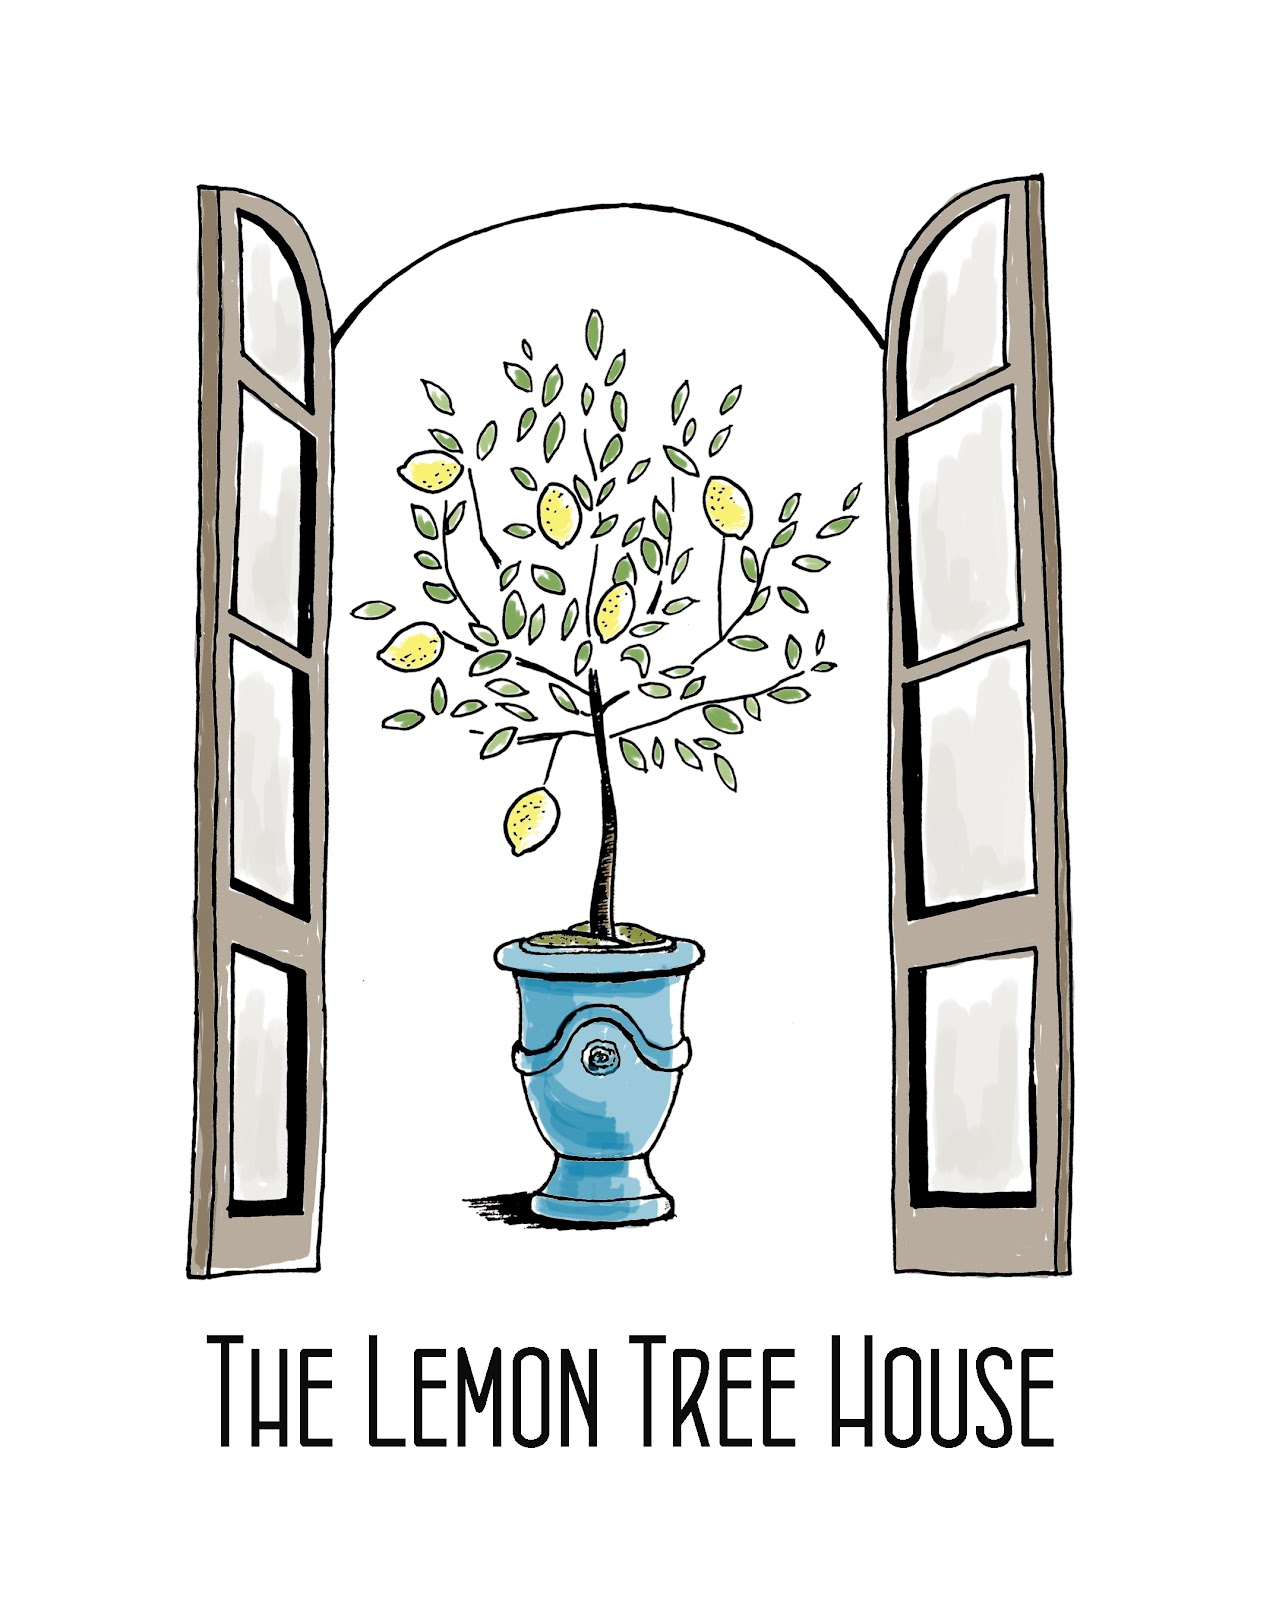 the lemon tree essay The lemon tree provides viewers with an excellent portrayal of life's struggles as a palestinian woman being oppressed due to an ongoing israeli-palestinian conflict.